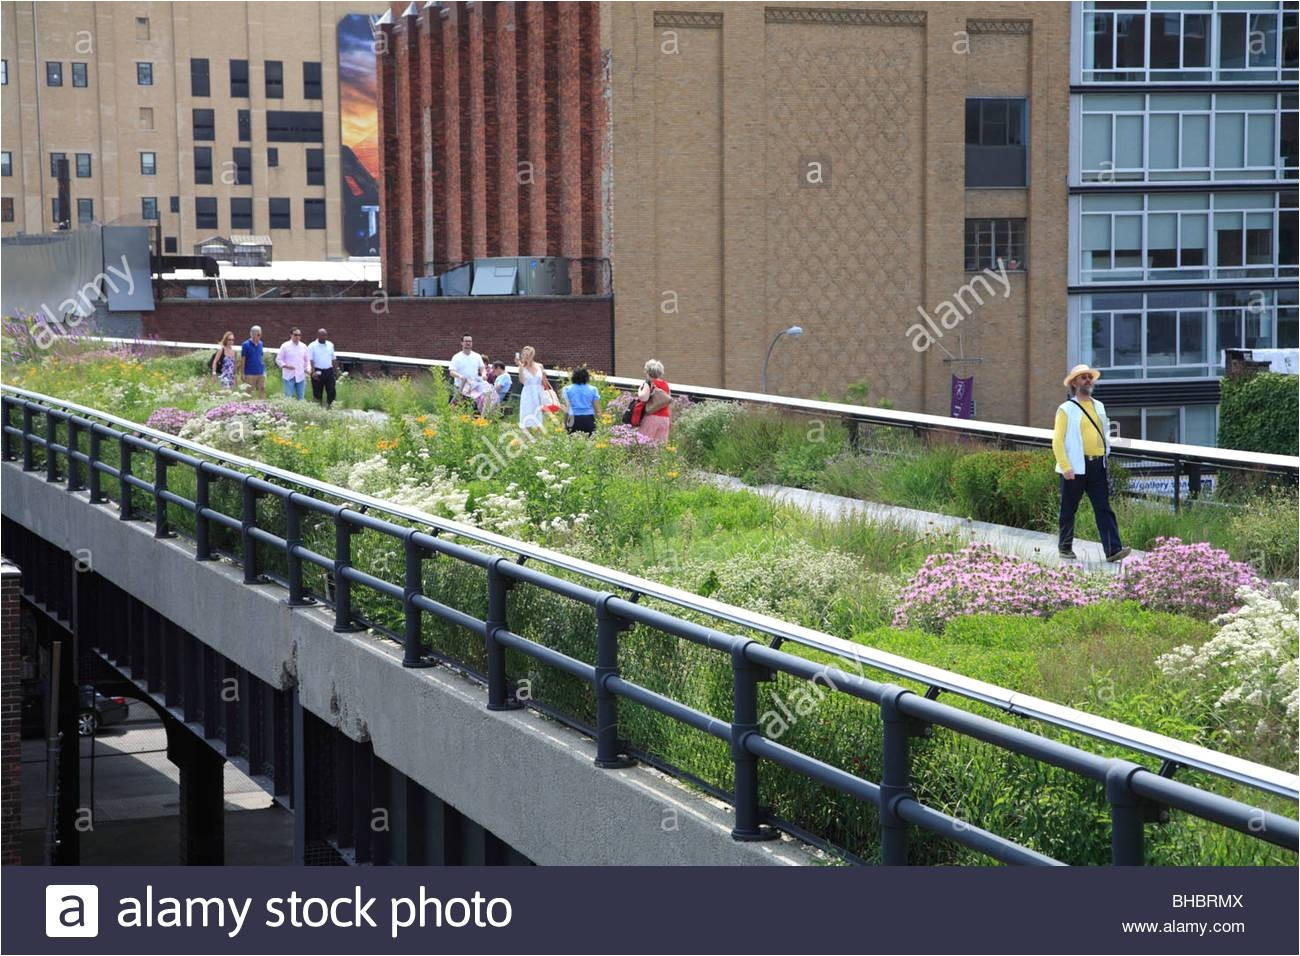 highline elevated public park manhattan new york city